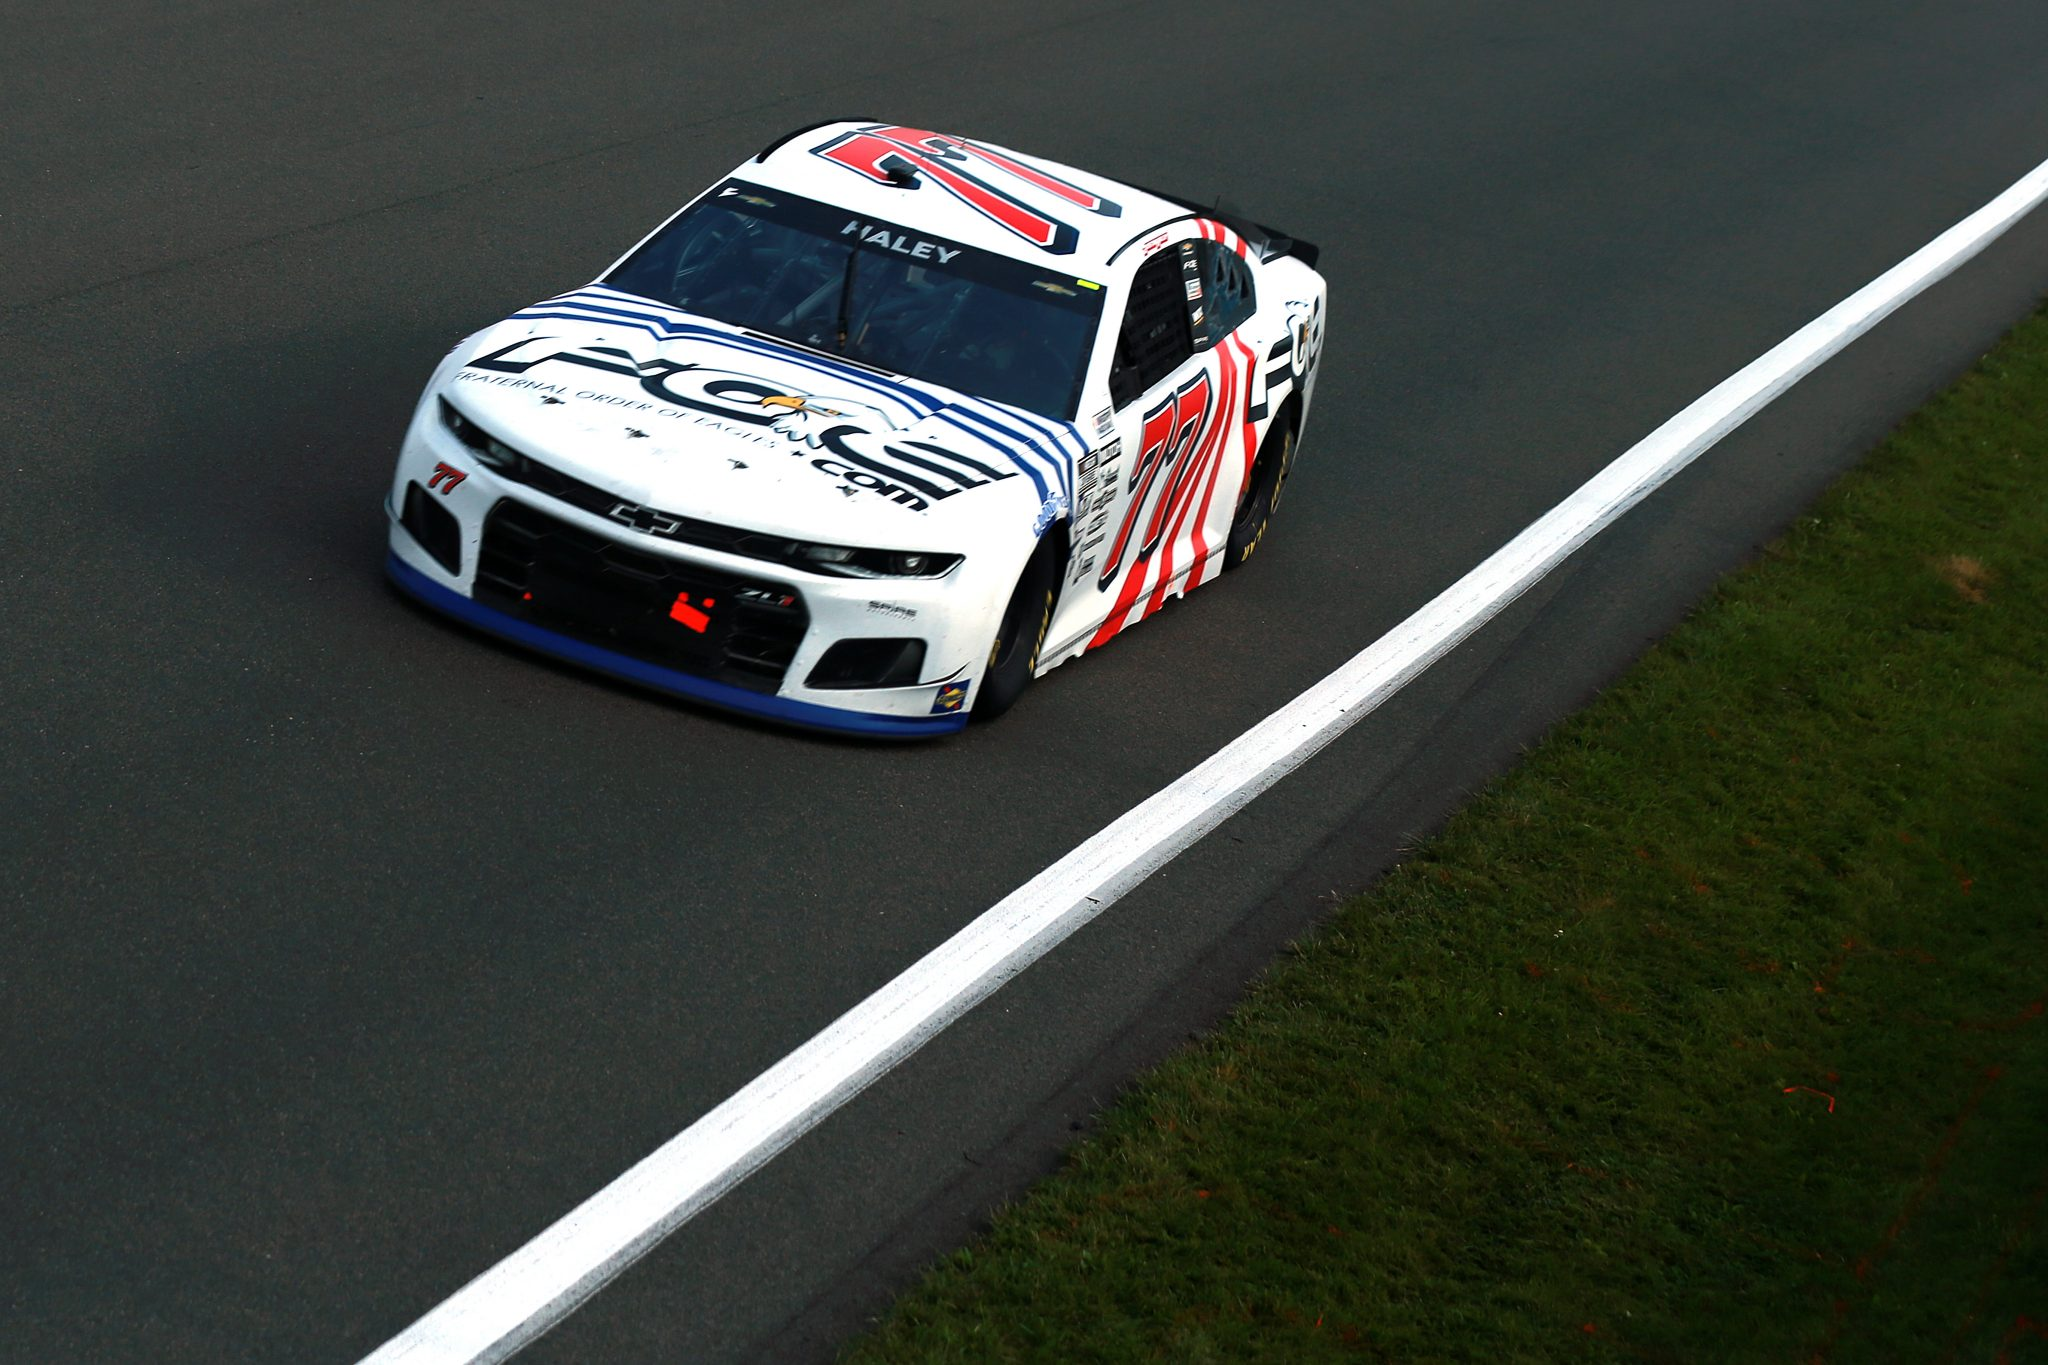 WATKINS GLEN, NEW YORK - AUGUST 08: Justin Haley, driver of the #77 Fraternal Order of Eagles Chevrolet, drives during the NASCAR Cup Series Go Bowling at The Glen at Watkins Glen International on August 08, 2021 in Watkins Glen, New York. (Photo by Sean Gardner/Getty Images) | Getty Images